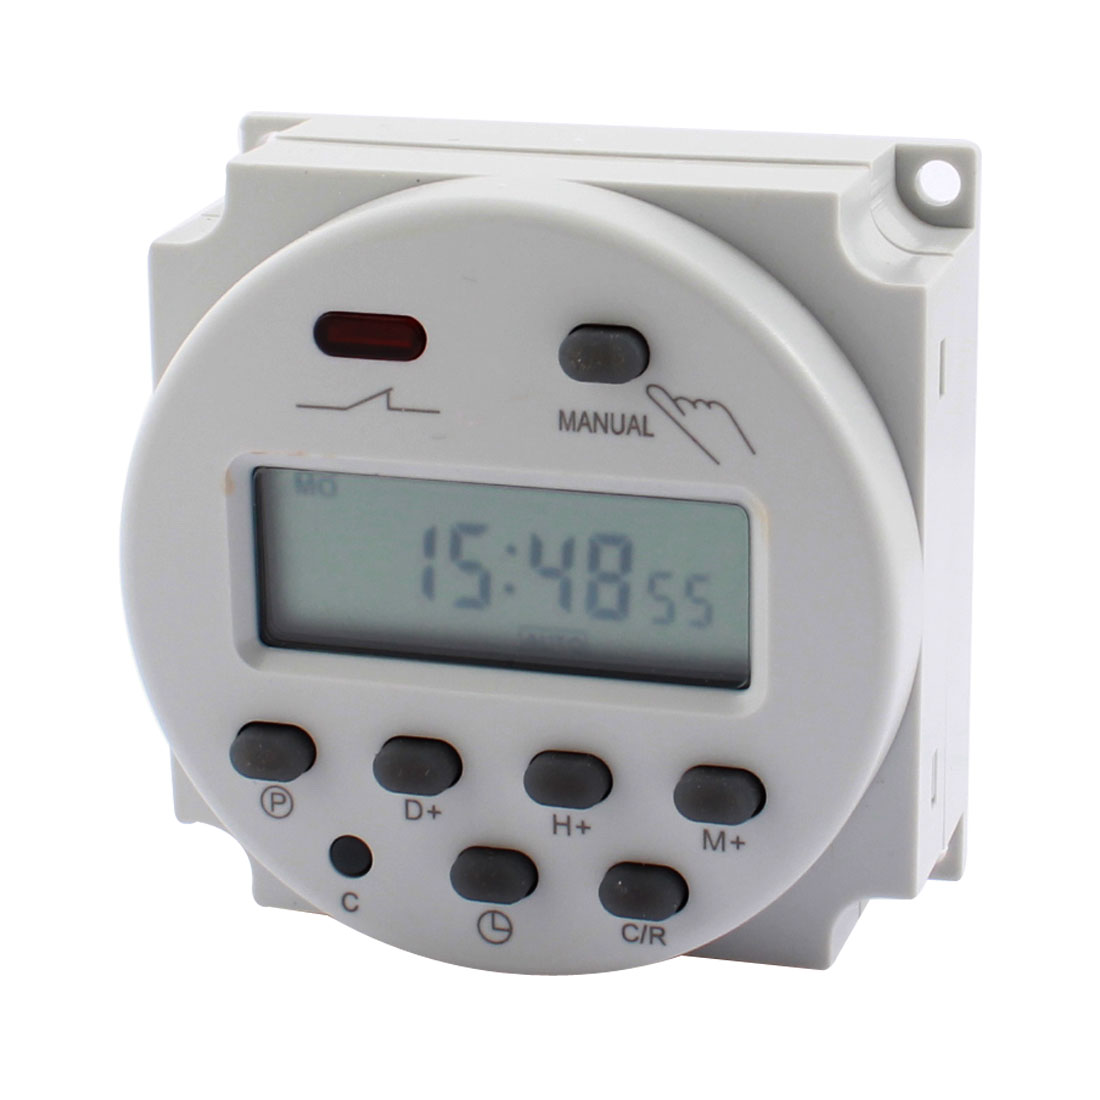 Mini CN101A AC 110V LCD Digit Display Programmable Countdown Timer Control Time Switch